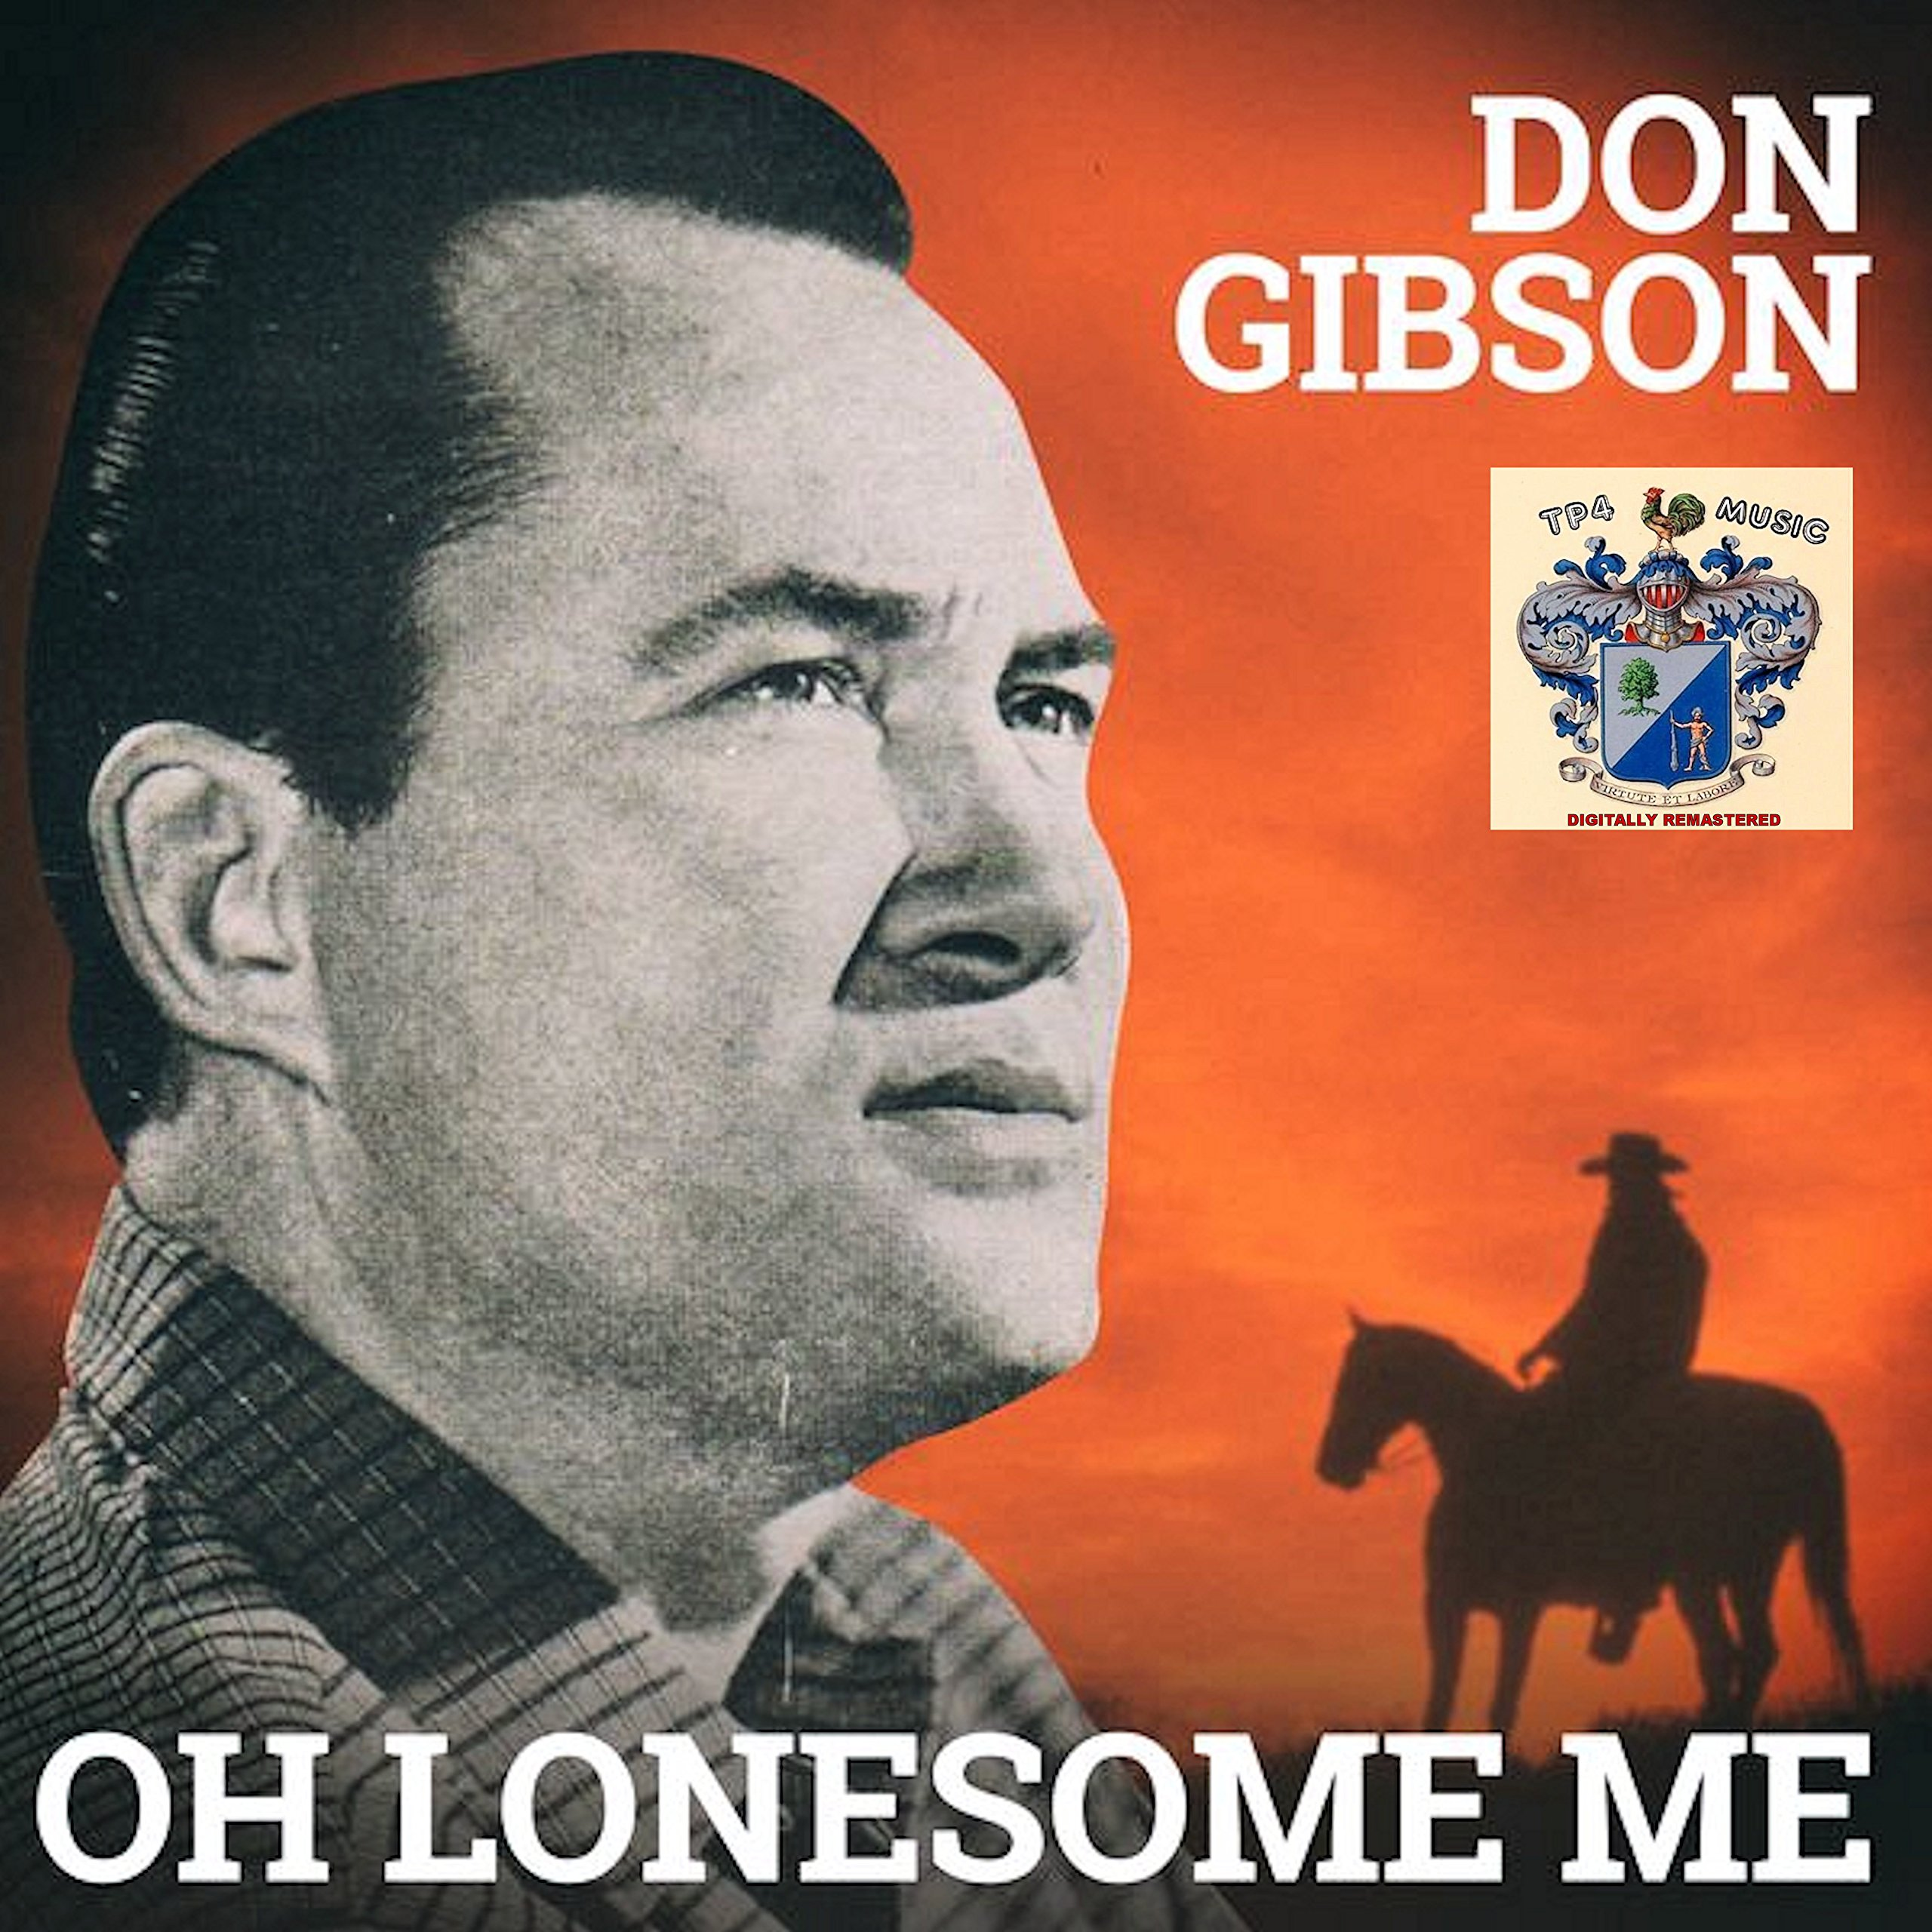 Amazon   Oh Lonesome Me   Don Gibson   カントリー   音楽